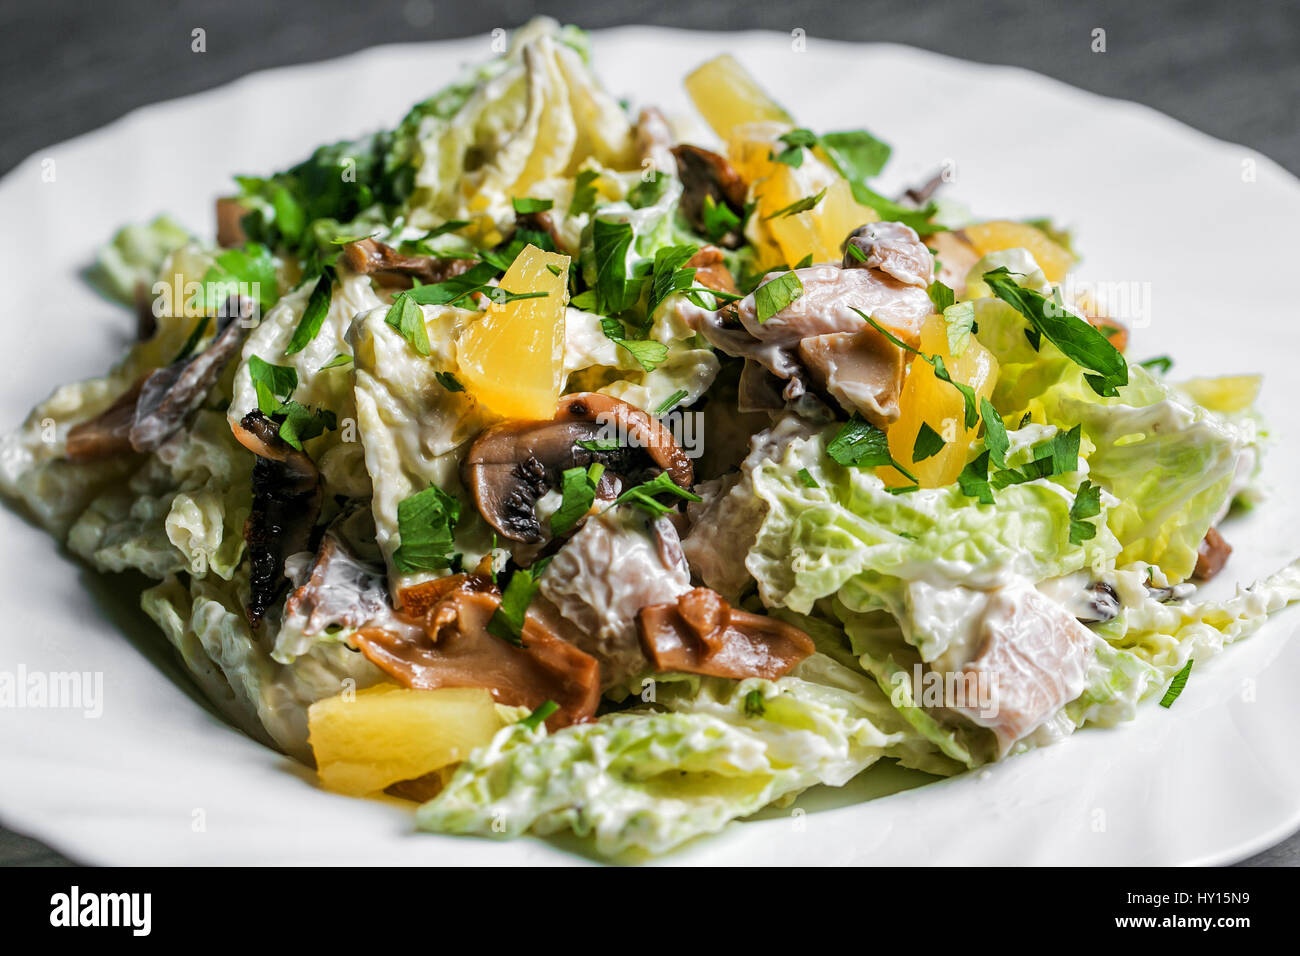 salad with mushrooms and oranges on white plate. selective focus - Stock Image